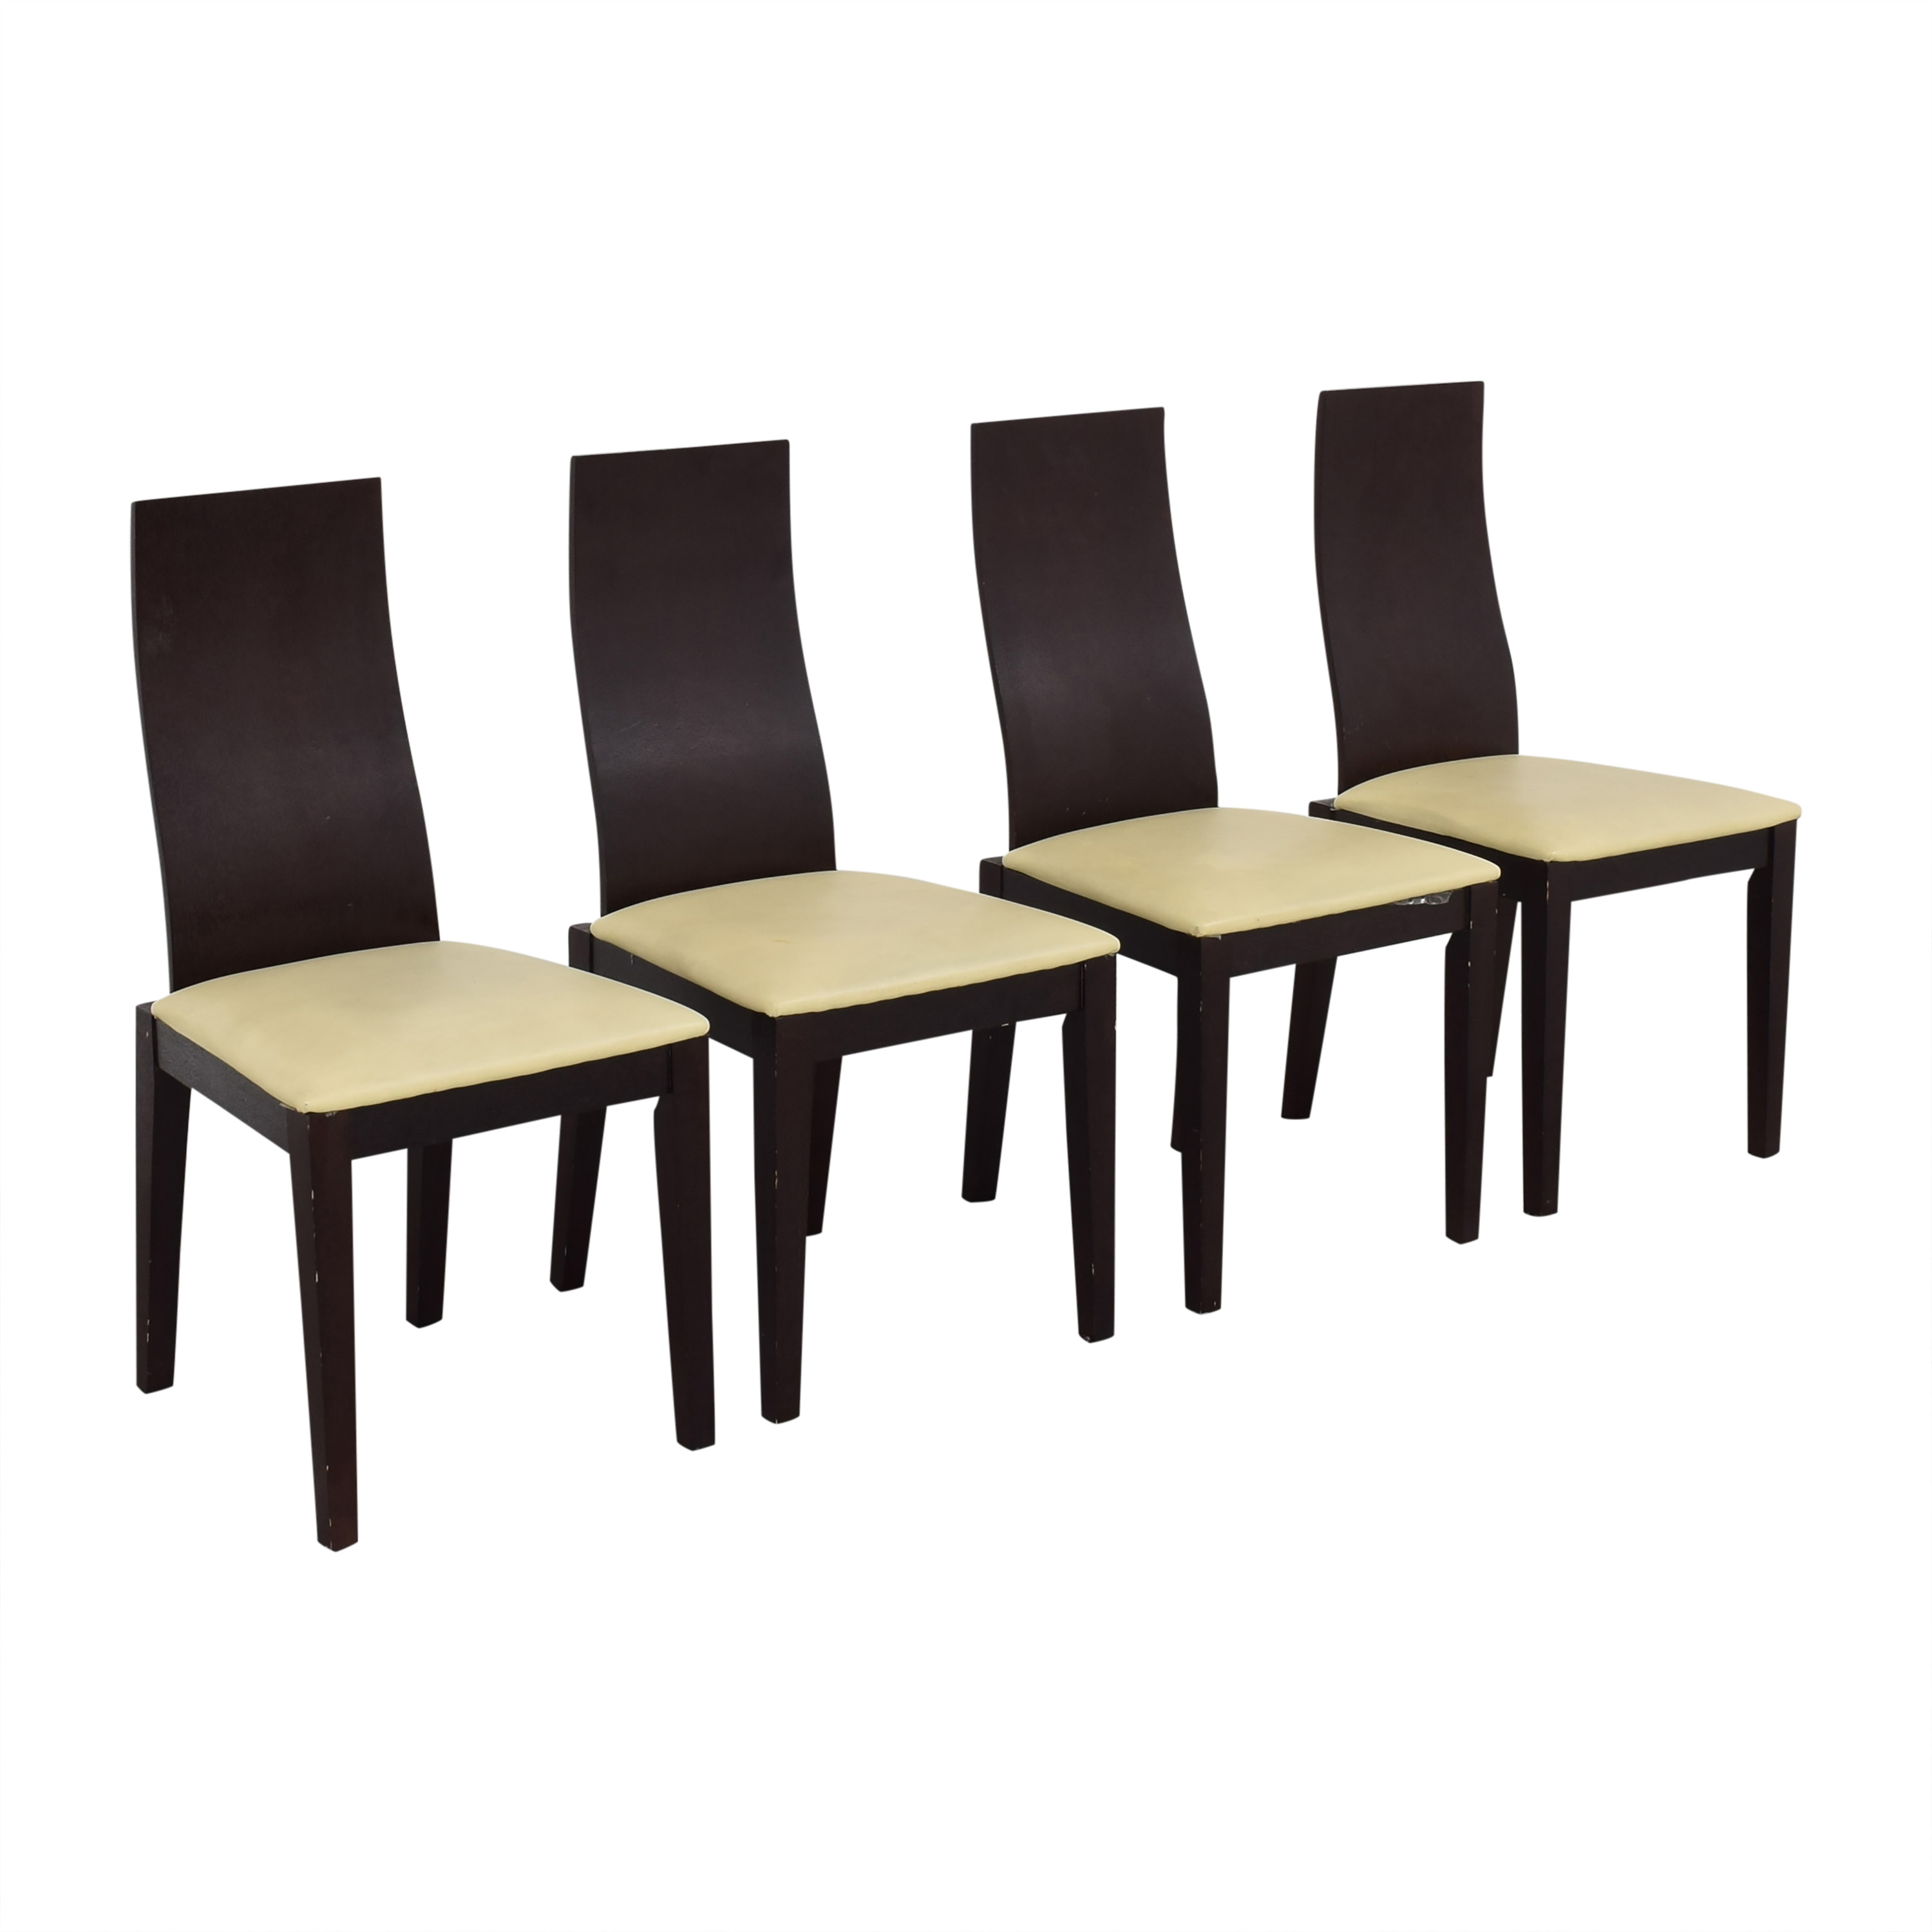 89 Off Calligaris Calligaris Dining Chairs Chairs